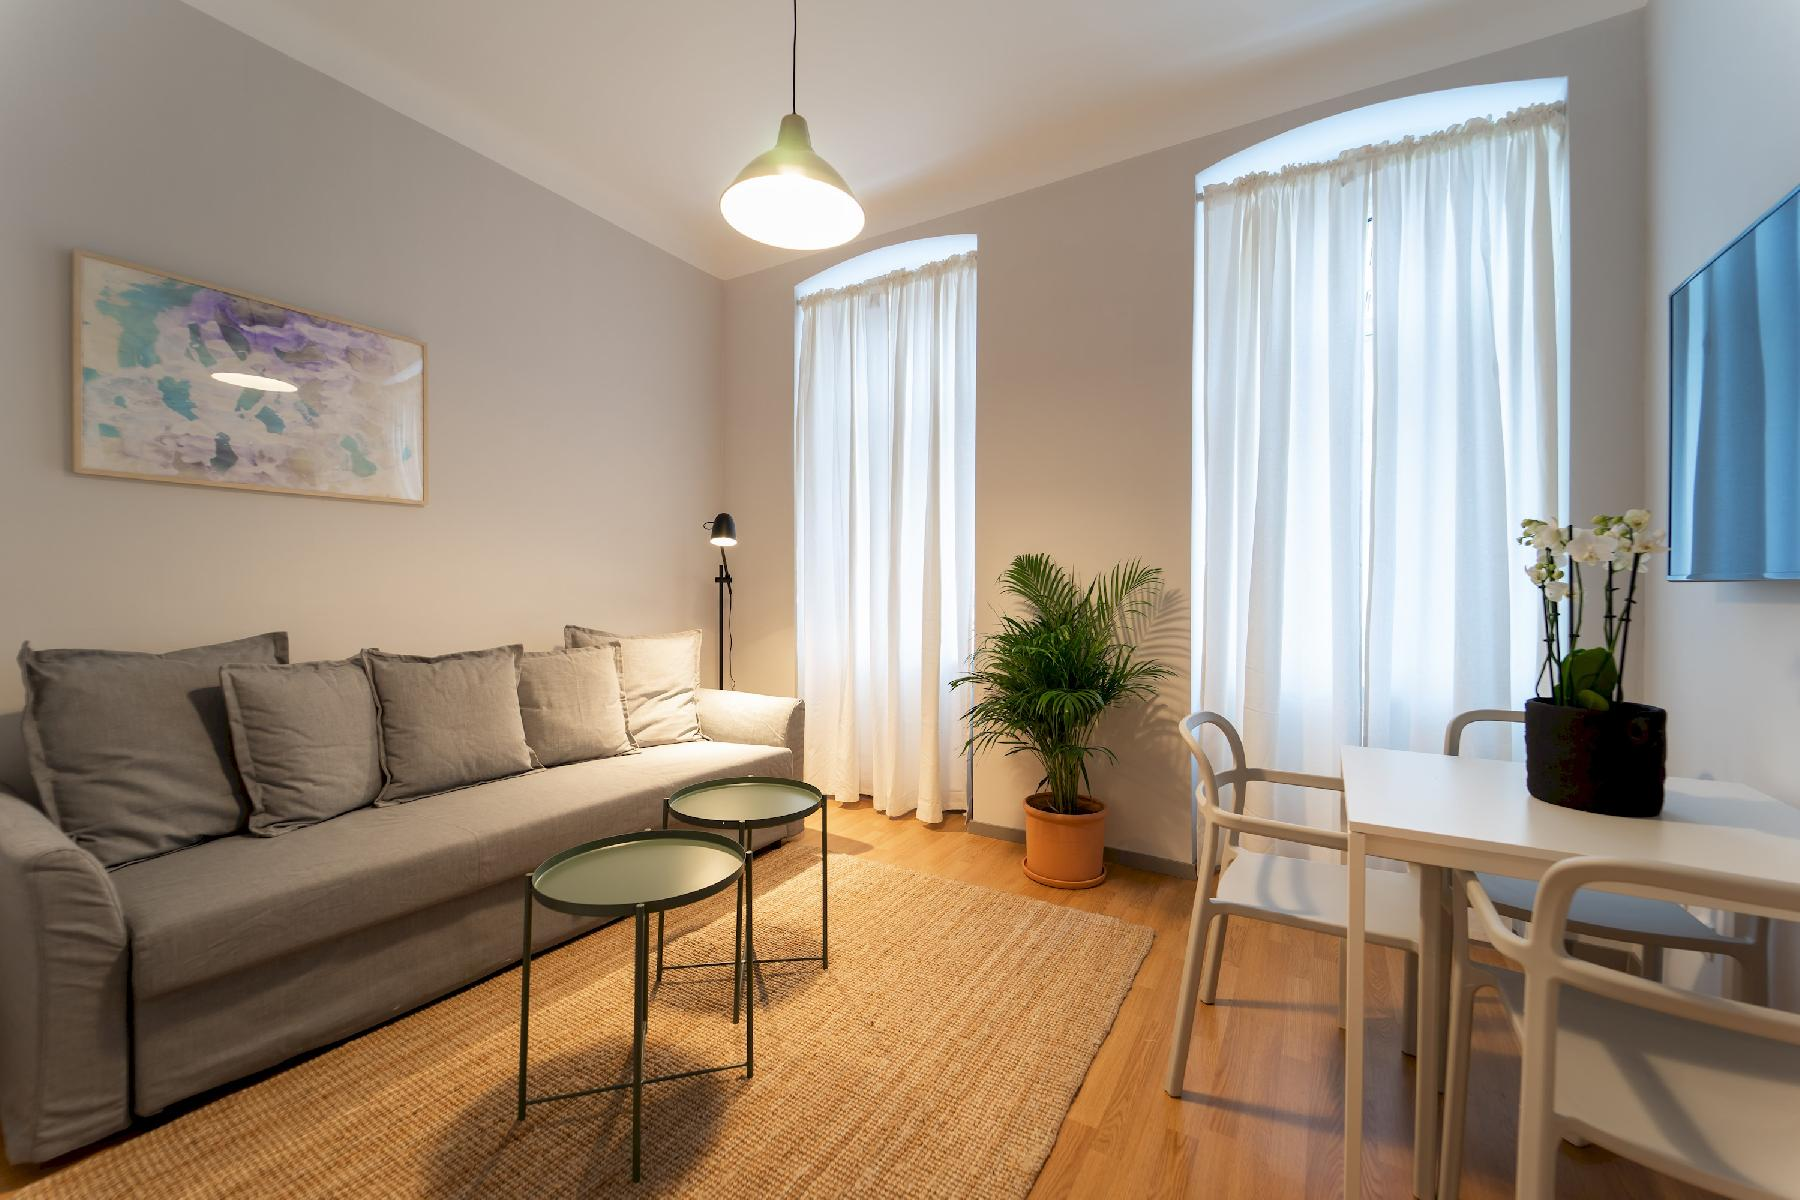 Modern and Lovely Apartment - CLOSE TO THE CENTER